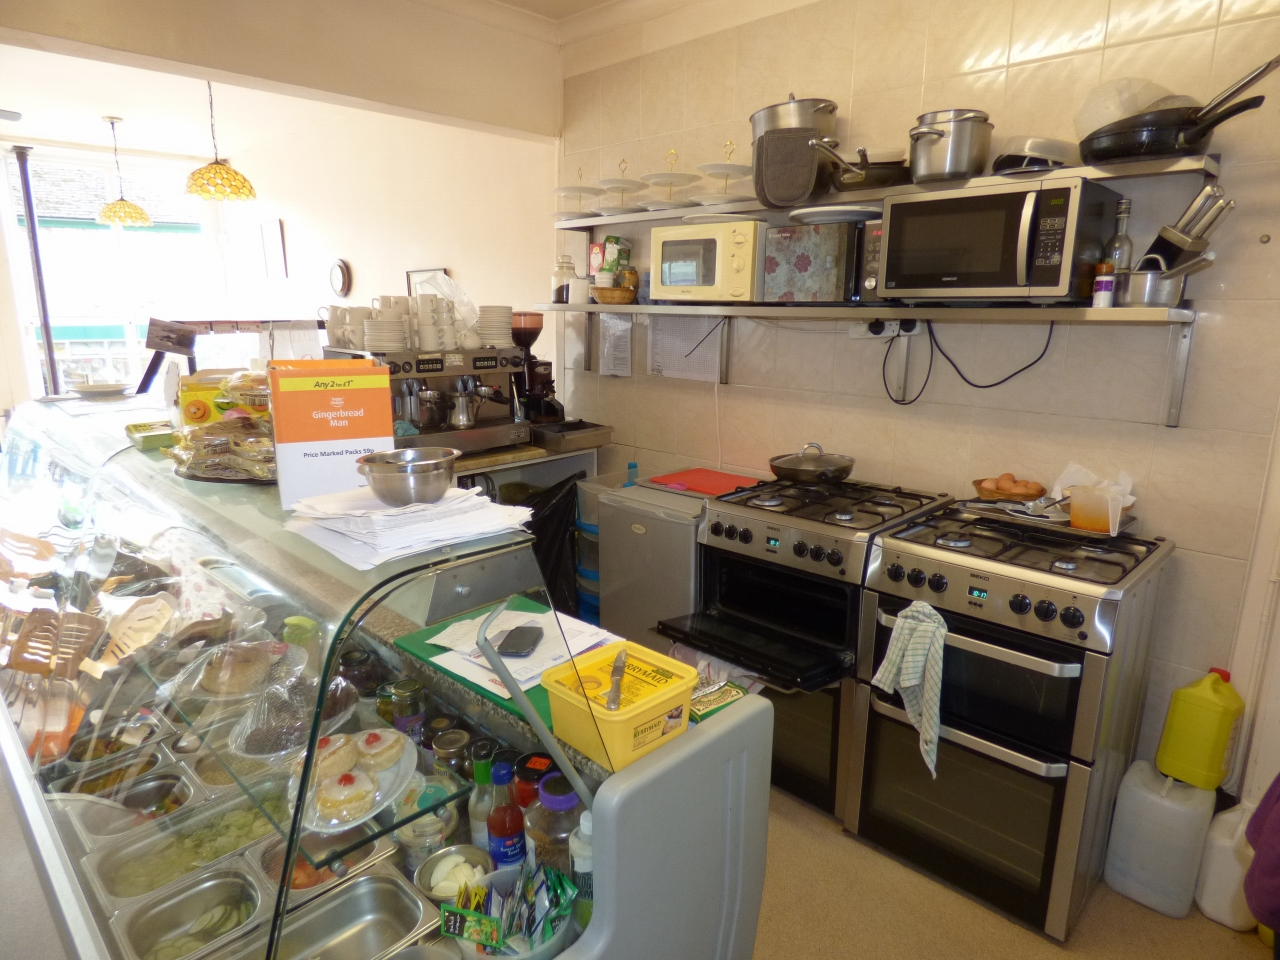 2 Bedroom Retail Property (high Street) For Sale - Image 4